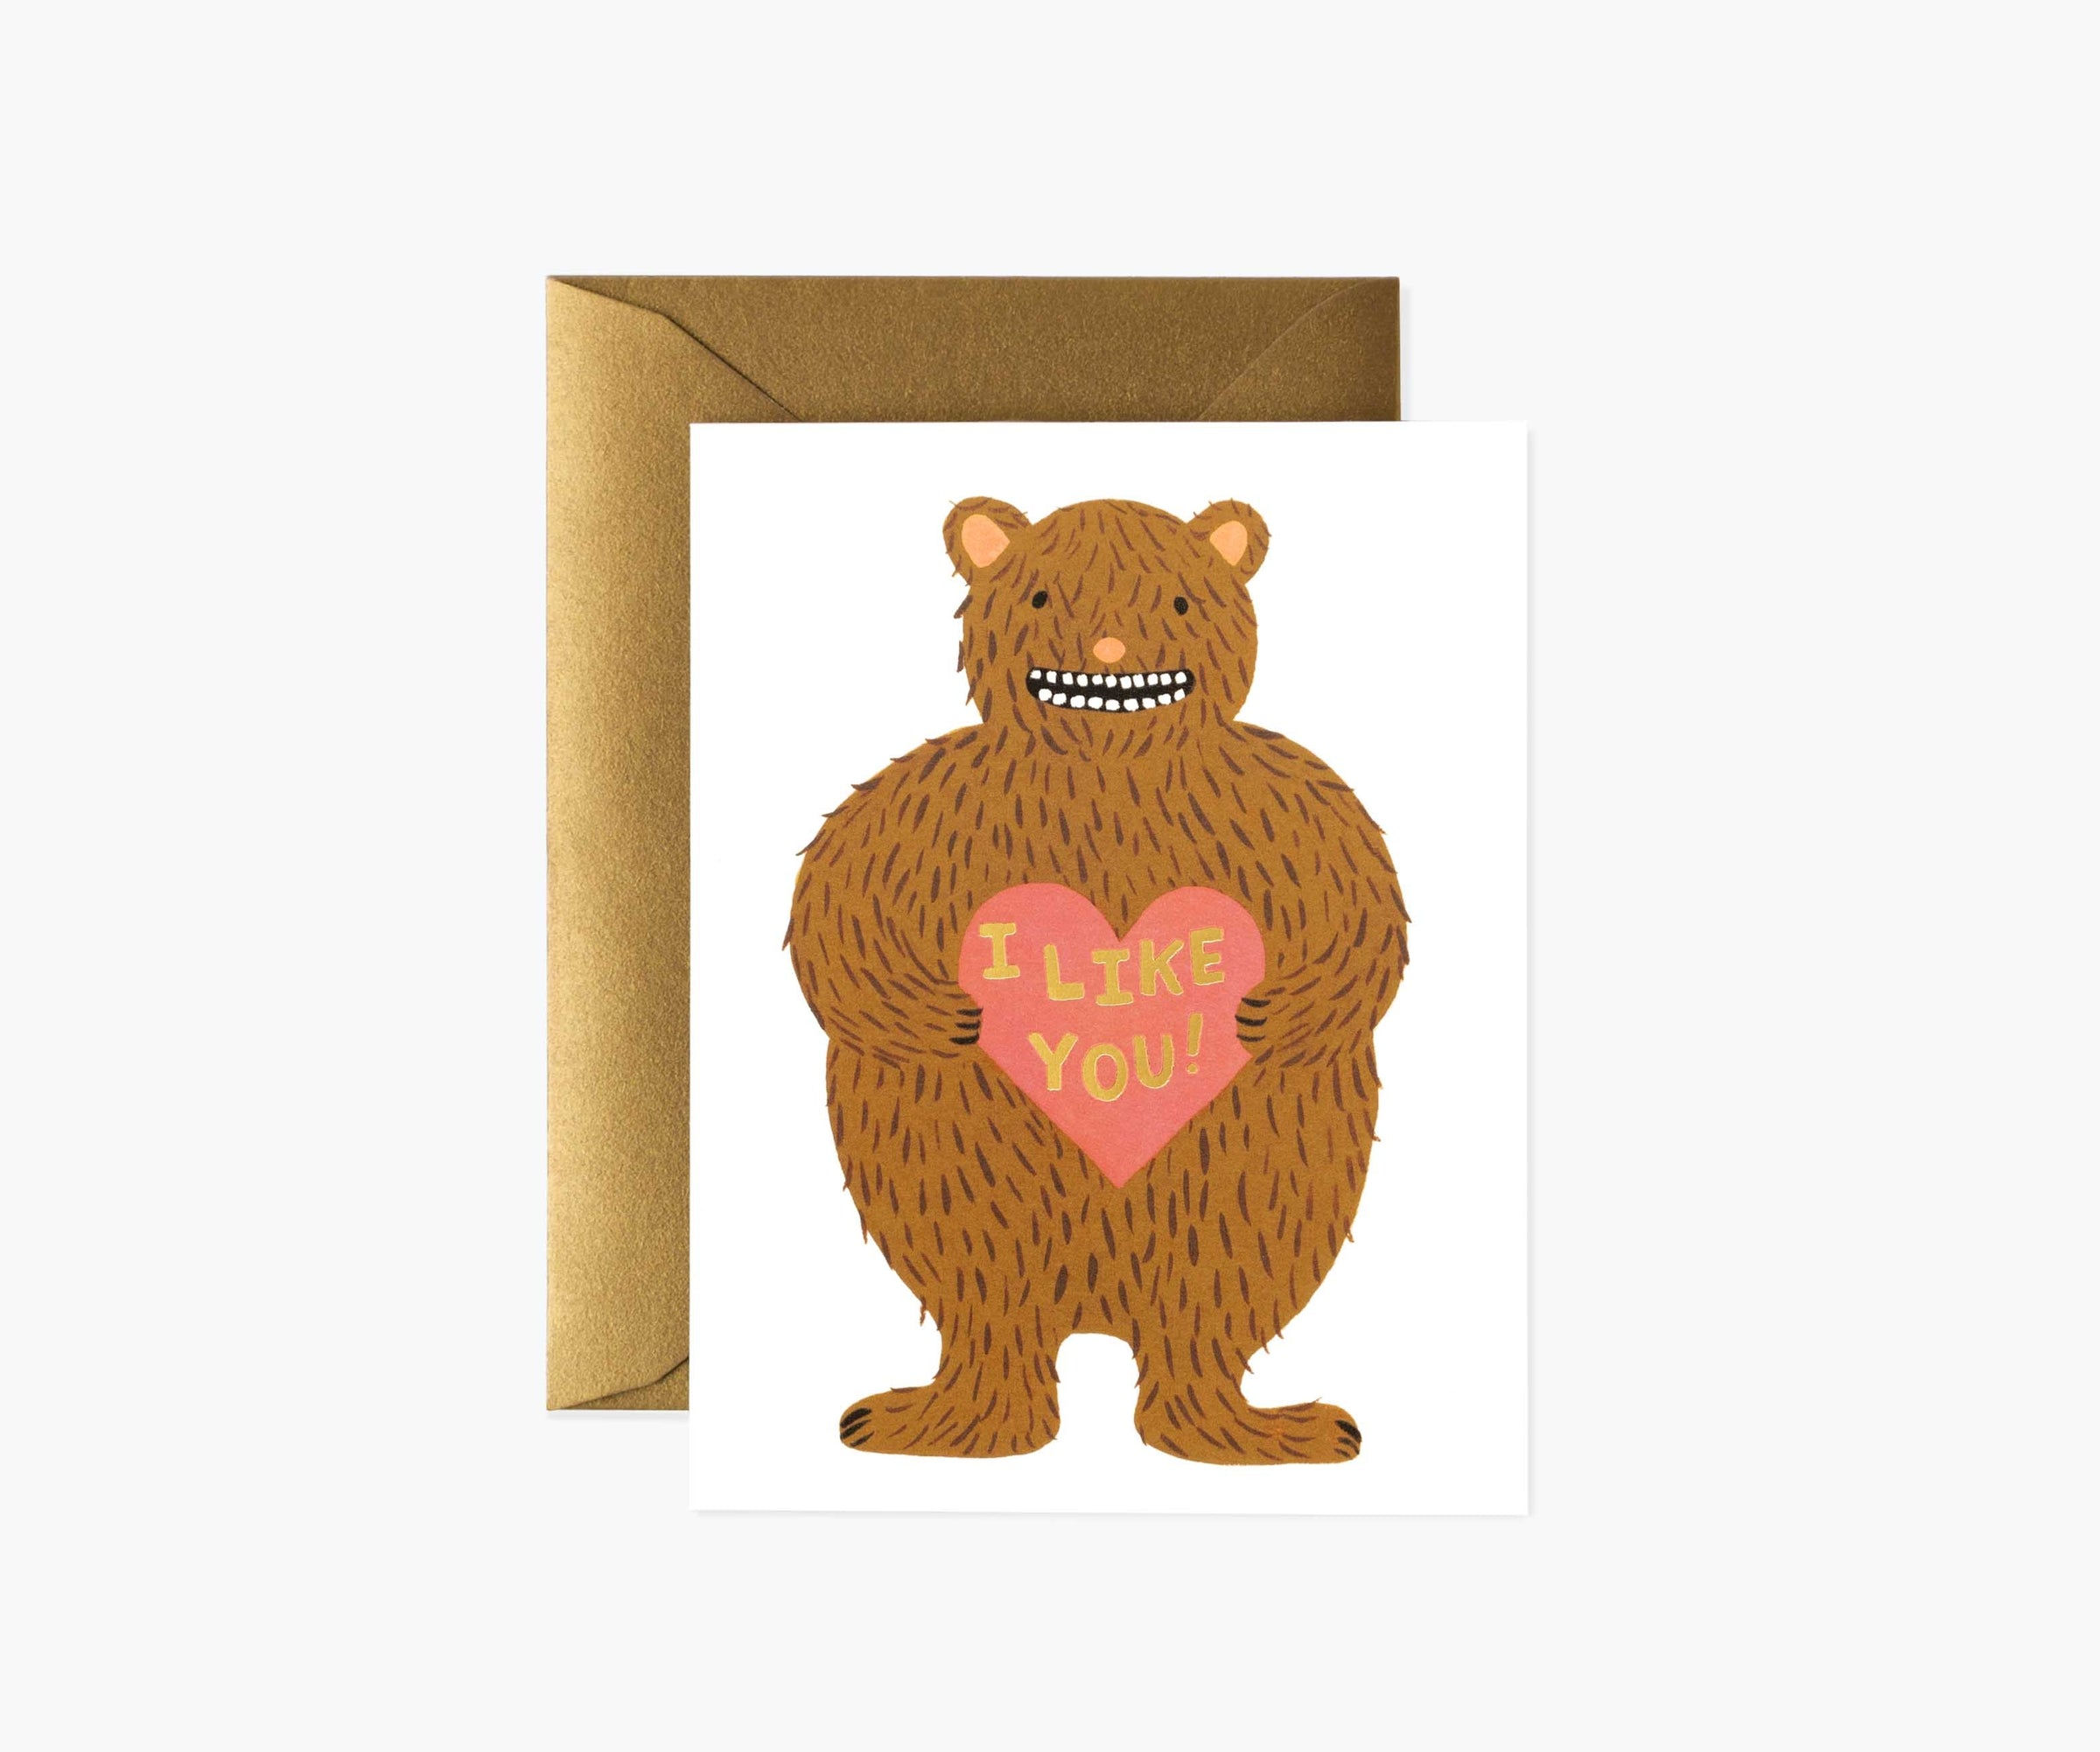 'I Like You' Greetings Card — The Tetley Shop